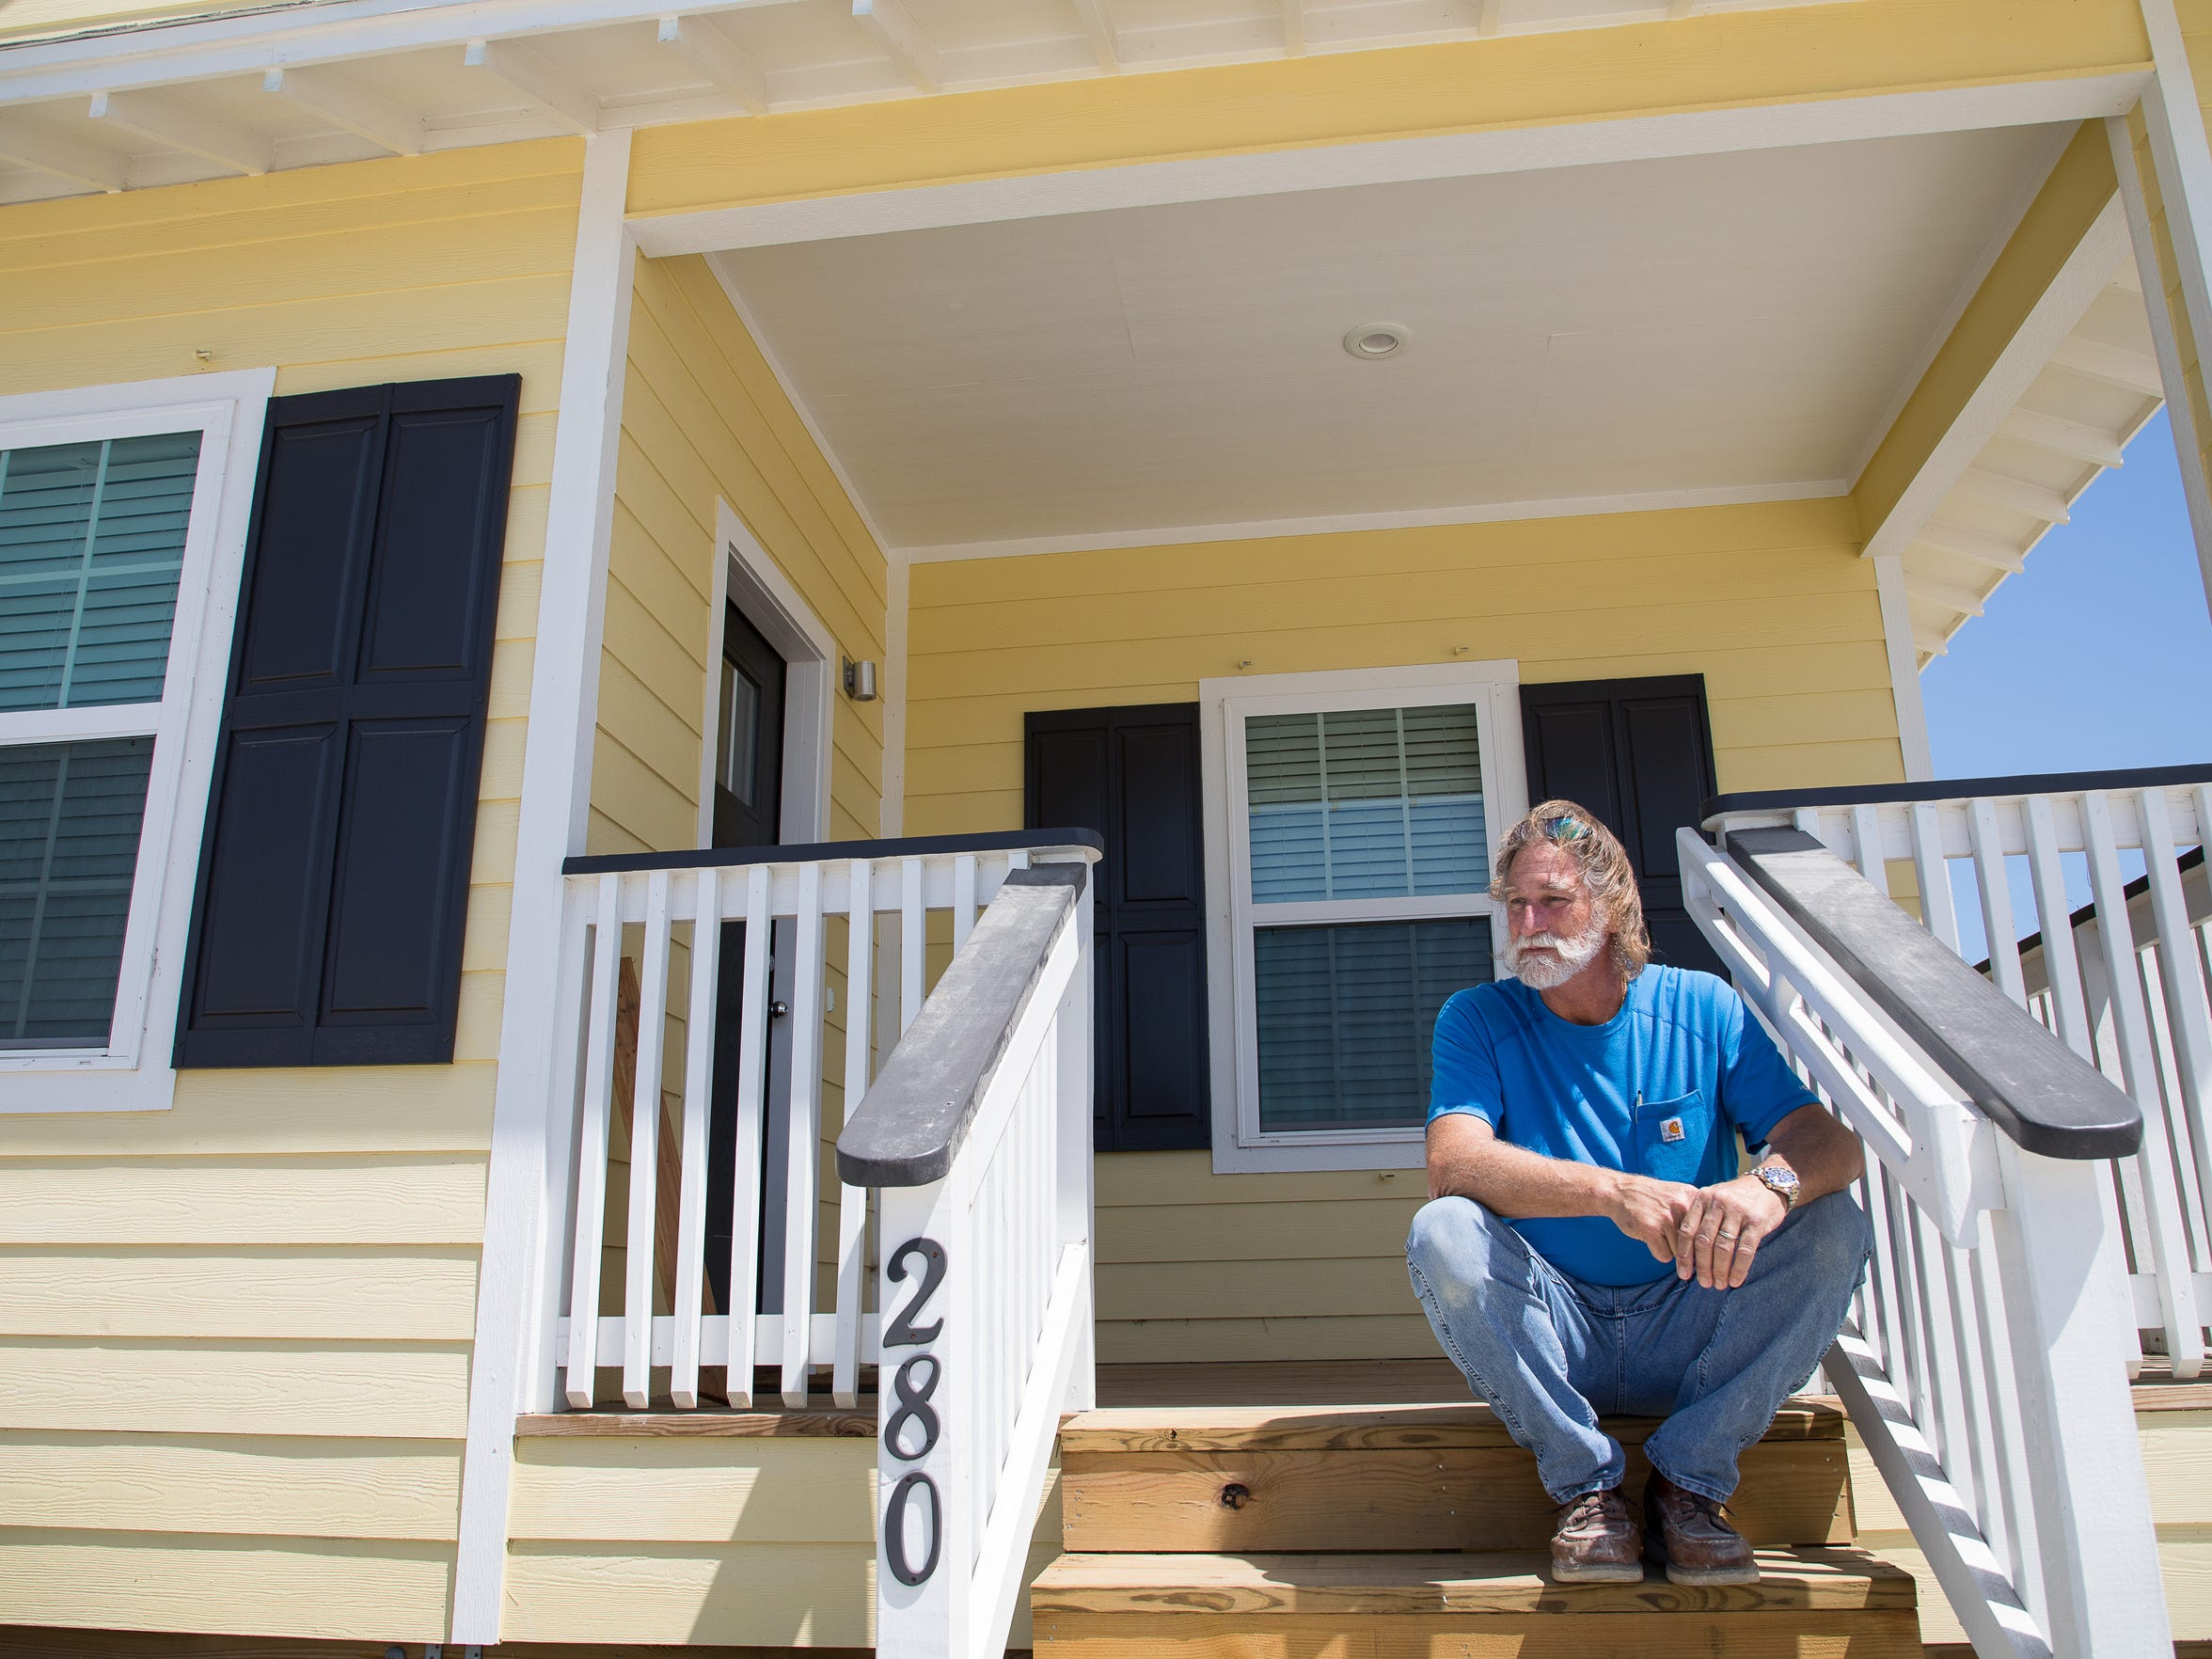 Developer Bill Gavit sits on the porch of a home he built under Port Aransas' flexible unit development ordinance. The ordinance allows construction of residential development anywhere in the city, so long as the property is restricted to long-term use. In return, developers are offered concessions. The ordinance is part of the City Council's attempts to facility housing that is affordable for middle-class and service industry workers.